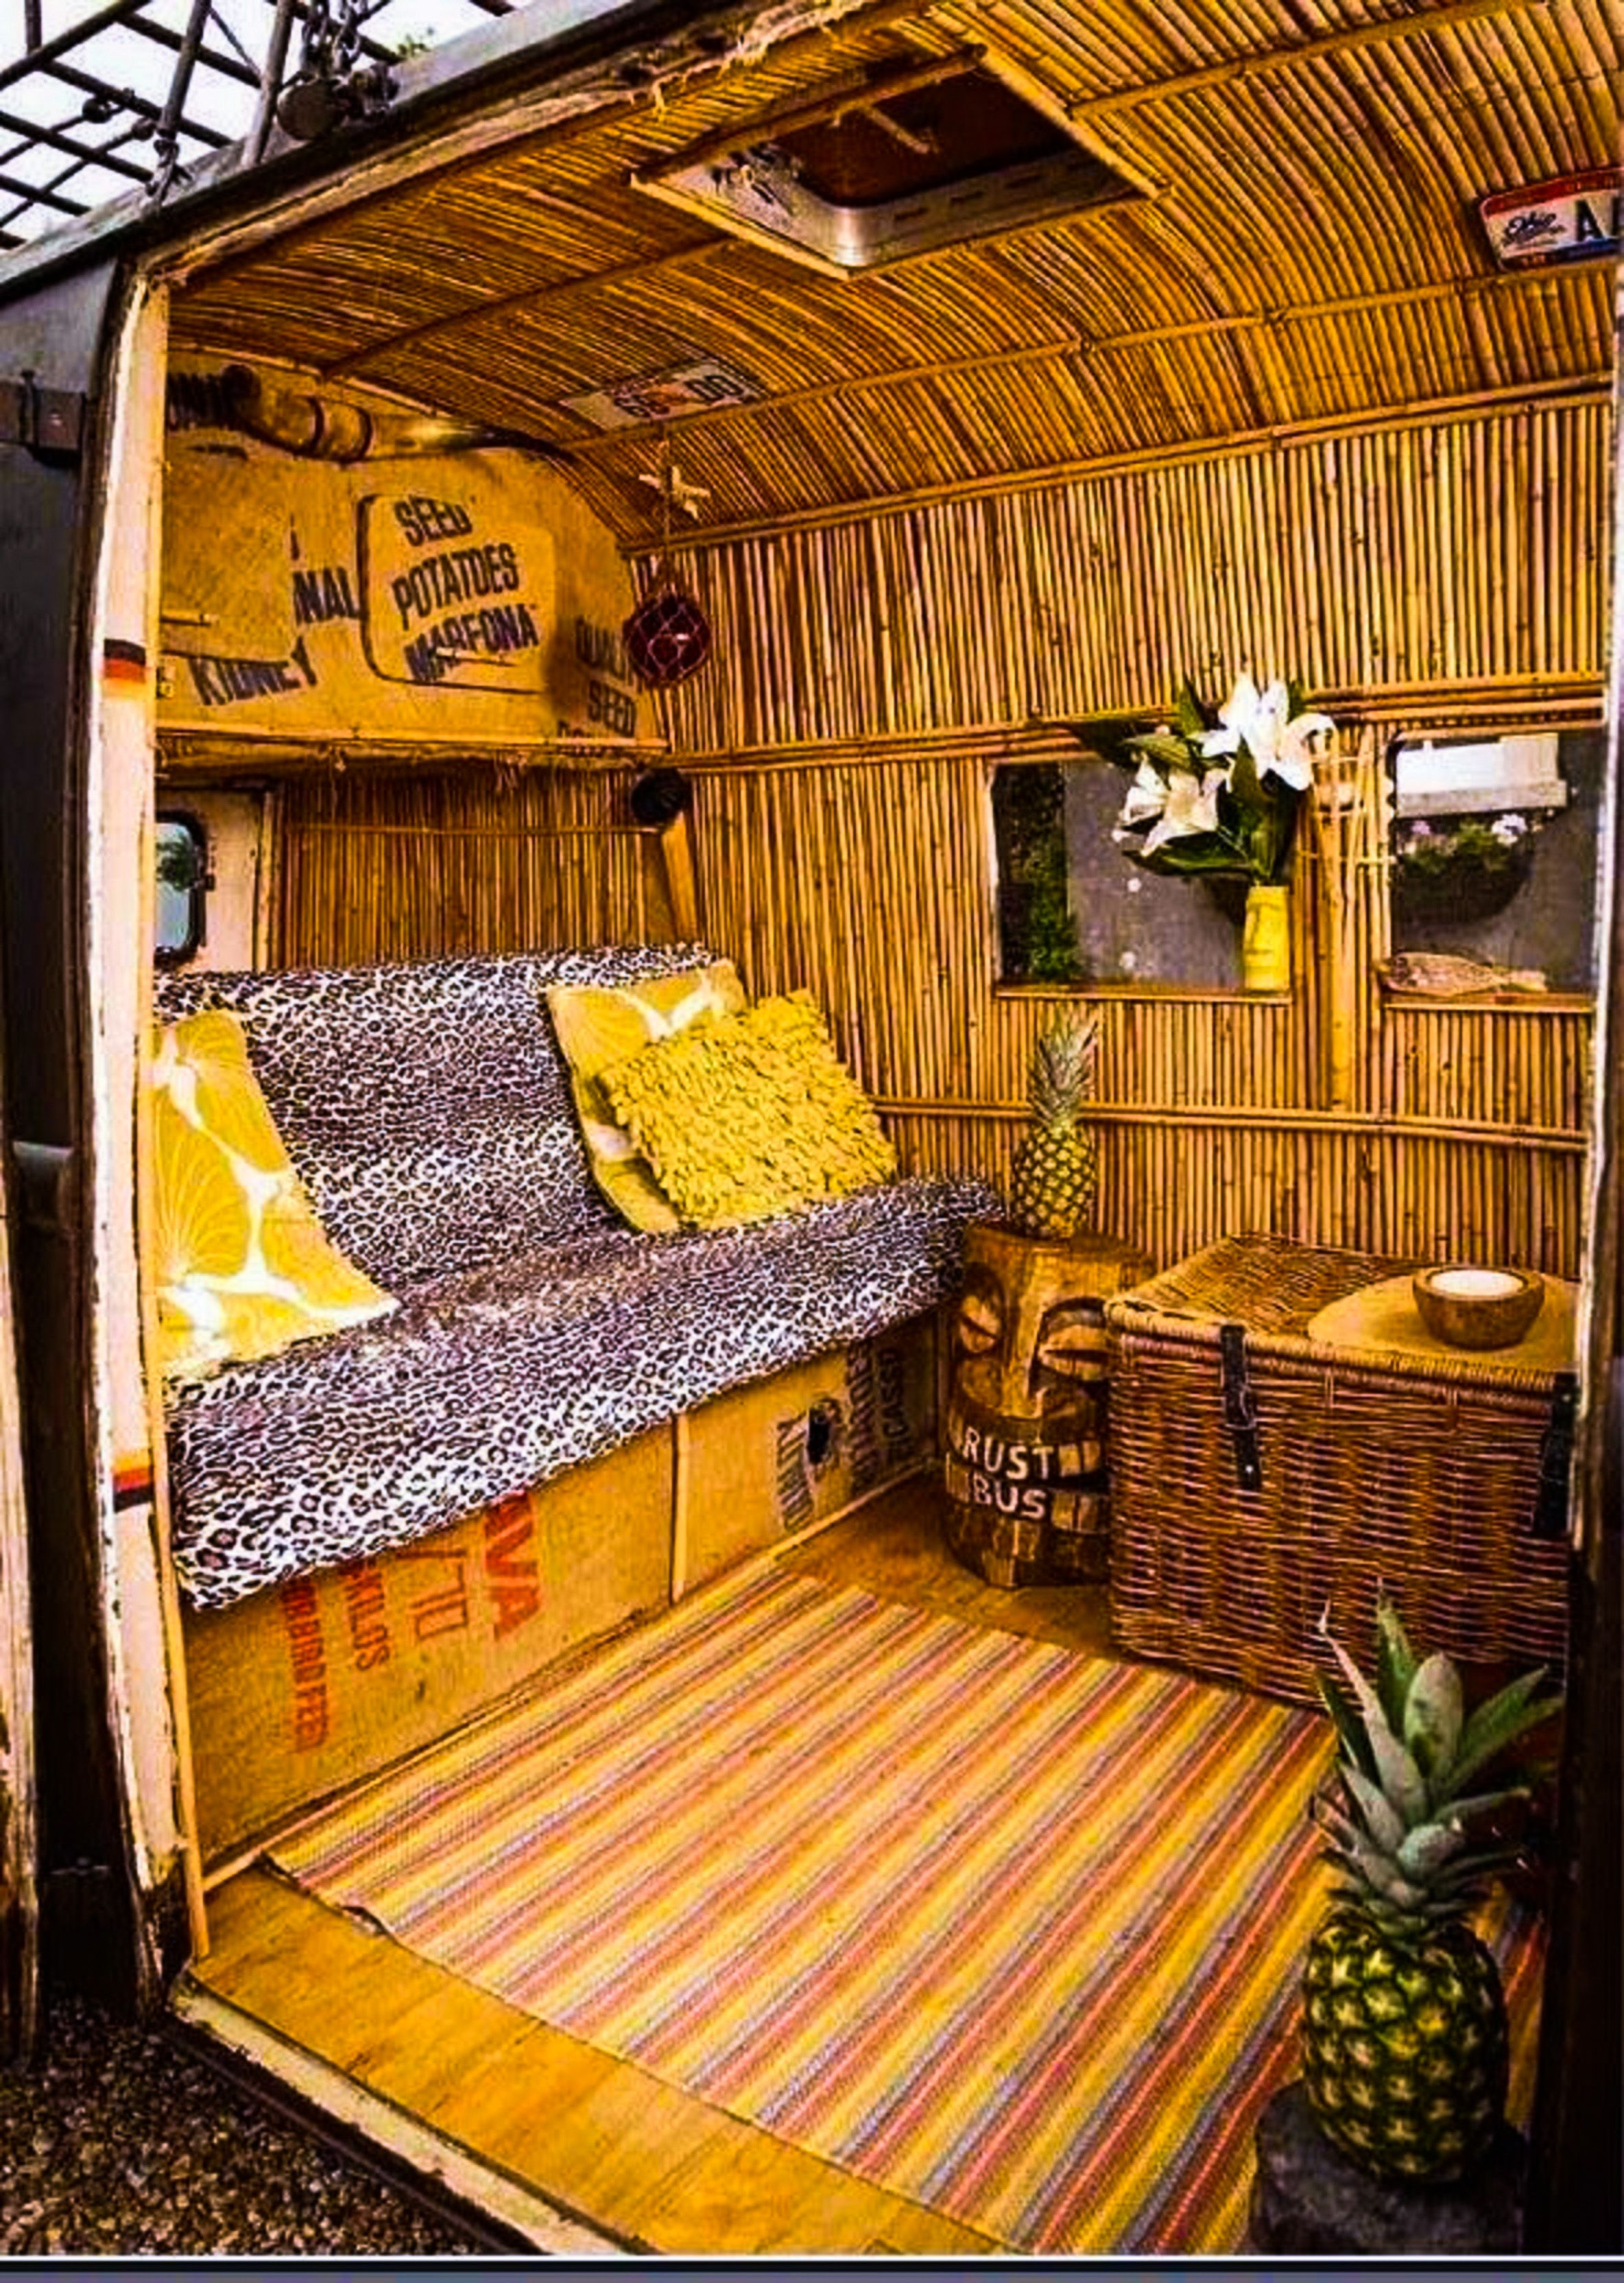 veedub camper 39 tiki 39 bus escaparates verano 2017 pinterest escaparate y verano. Black Bedroom Furniture Sets. Home Design Ideas